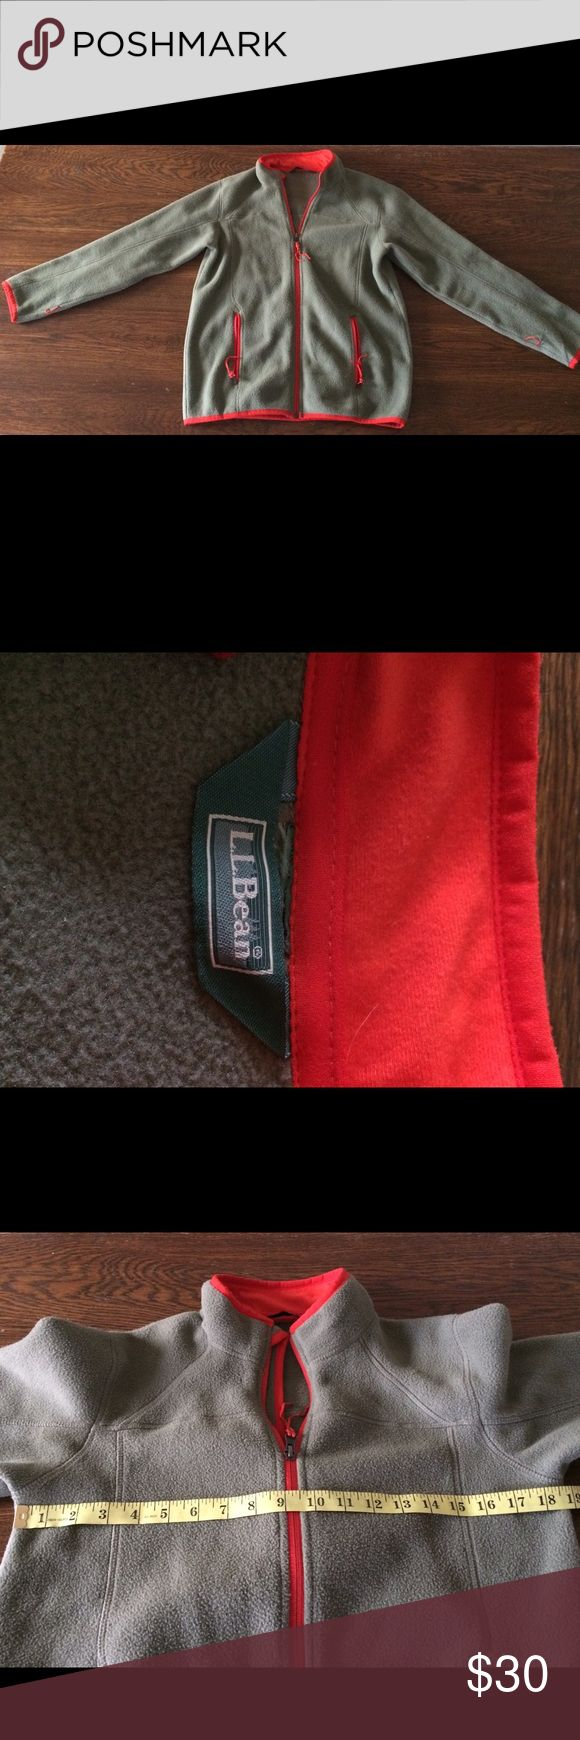 LL Bean Women's Zip Up Fleece Jacket Olive Green Body. Red Orange piping and zipper Detail. Size tag is missing. *Please see pictures for measuring for better idea of fit. Good Condition. *See picture with name label used. Double outerwear system. Thank you for visiting my closet. If you have any questions please let me. Thank you! L.L. Bean Jackets & Coats